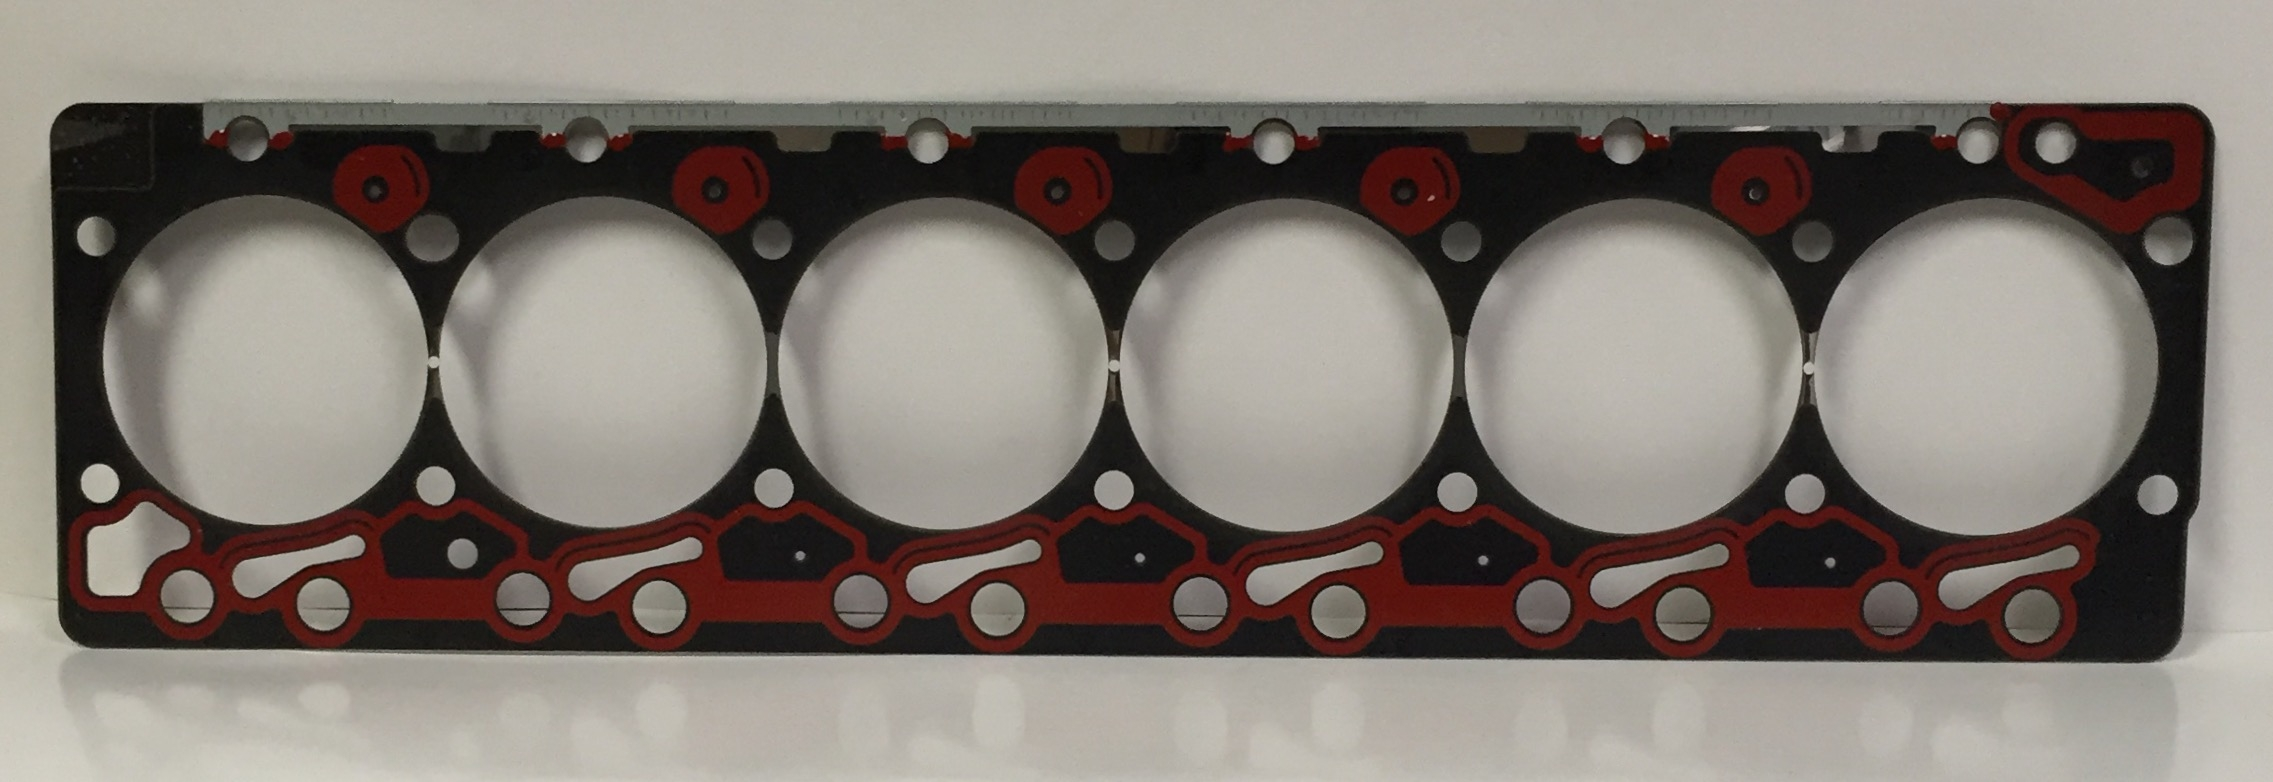 Cummins 12 Valve Custom Head Gasket